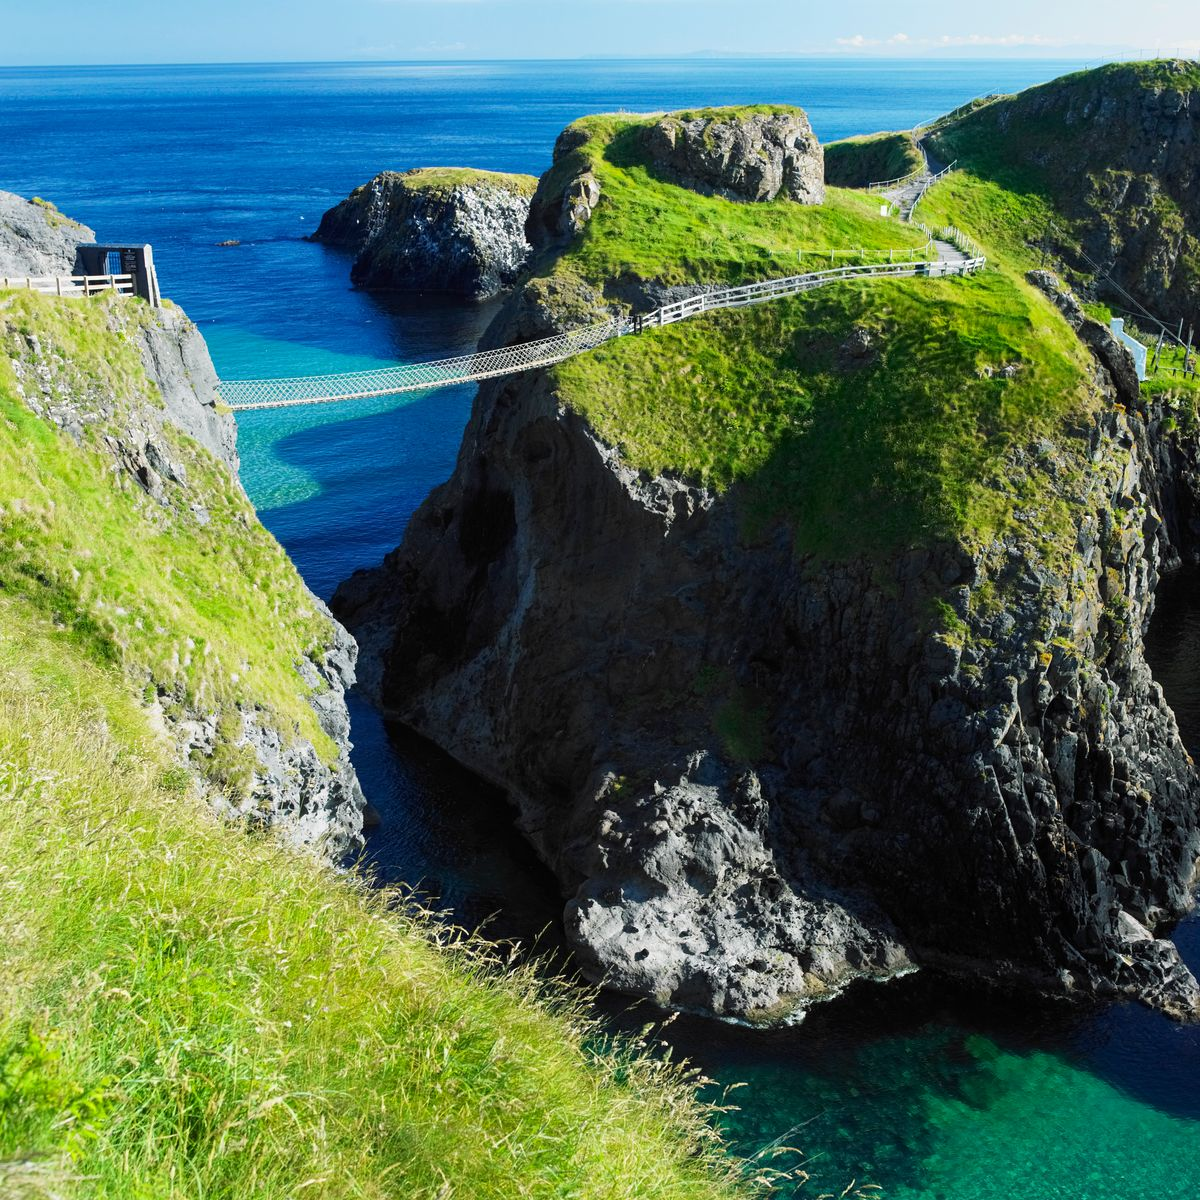 The 20m-long Carrick-a-rede Rope Bridge in Northern Ireland